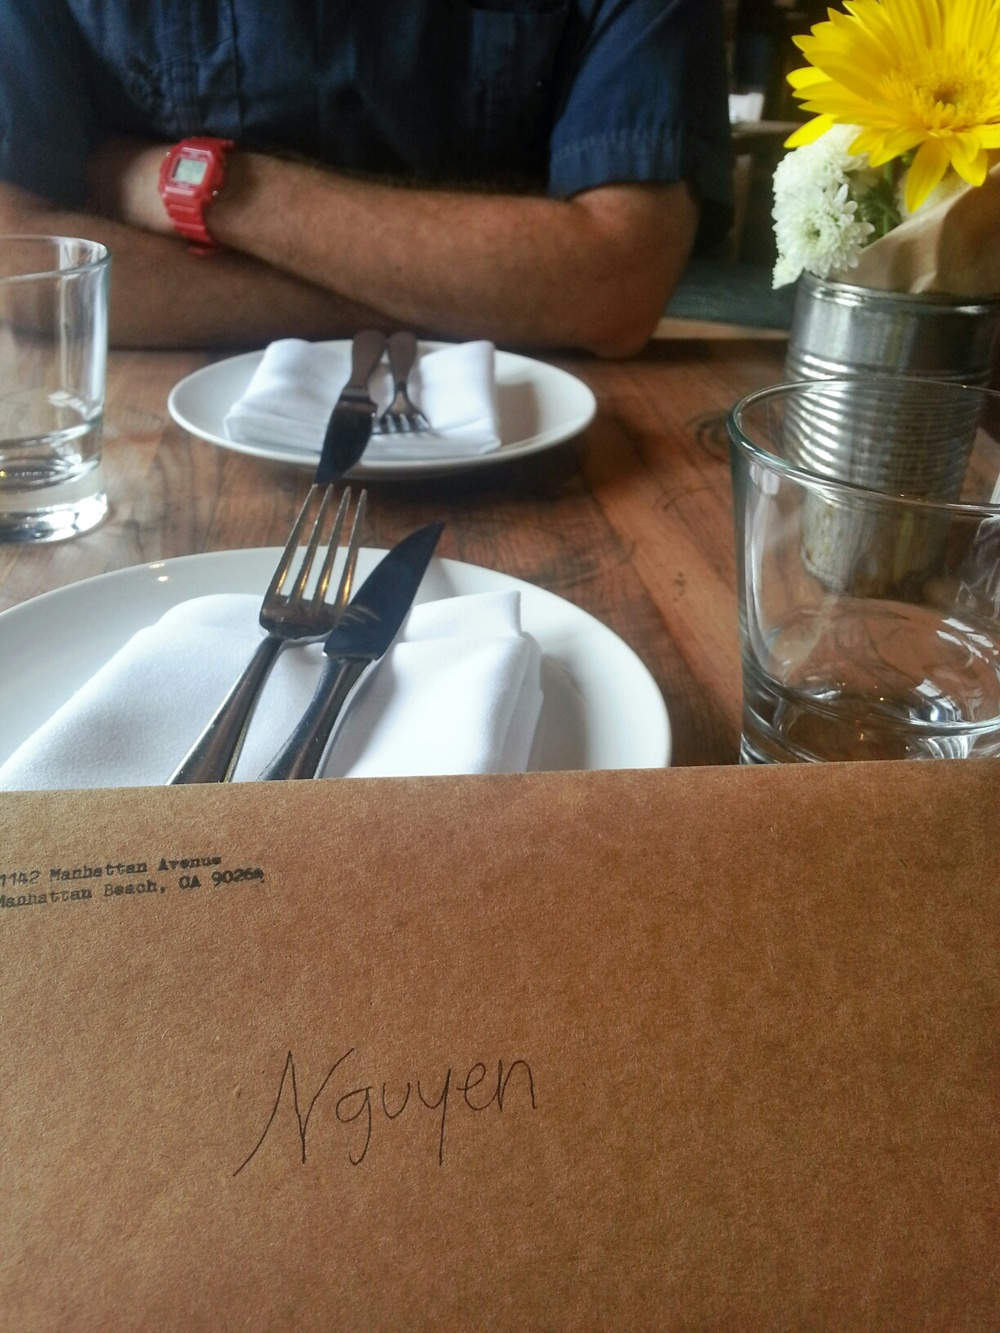 i love the personal touch - my last name on the menu